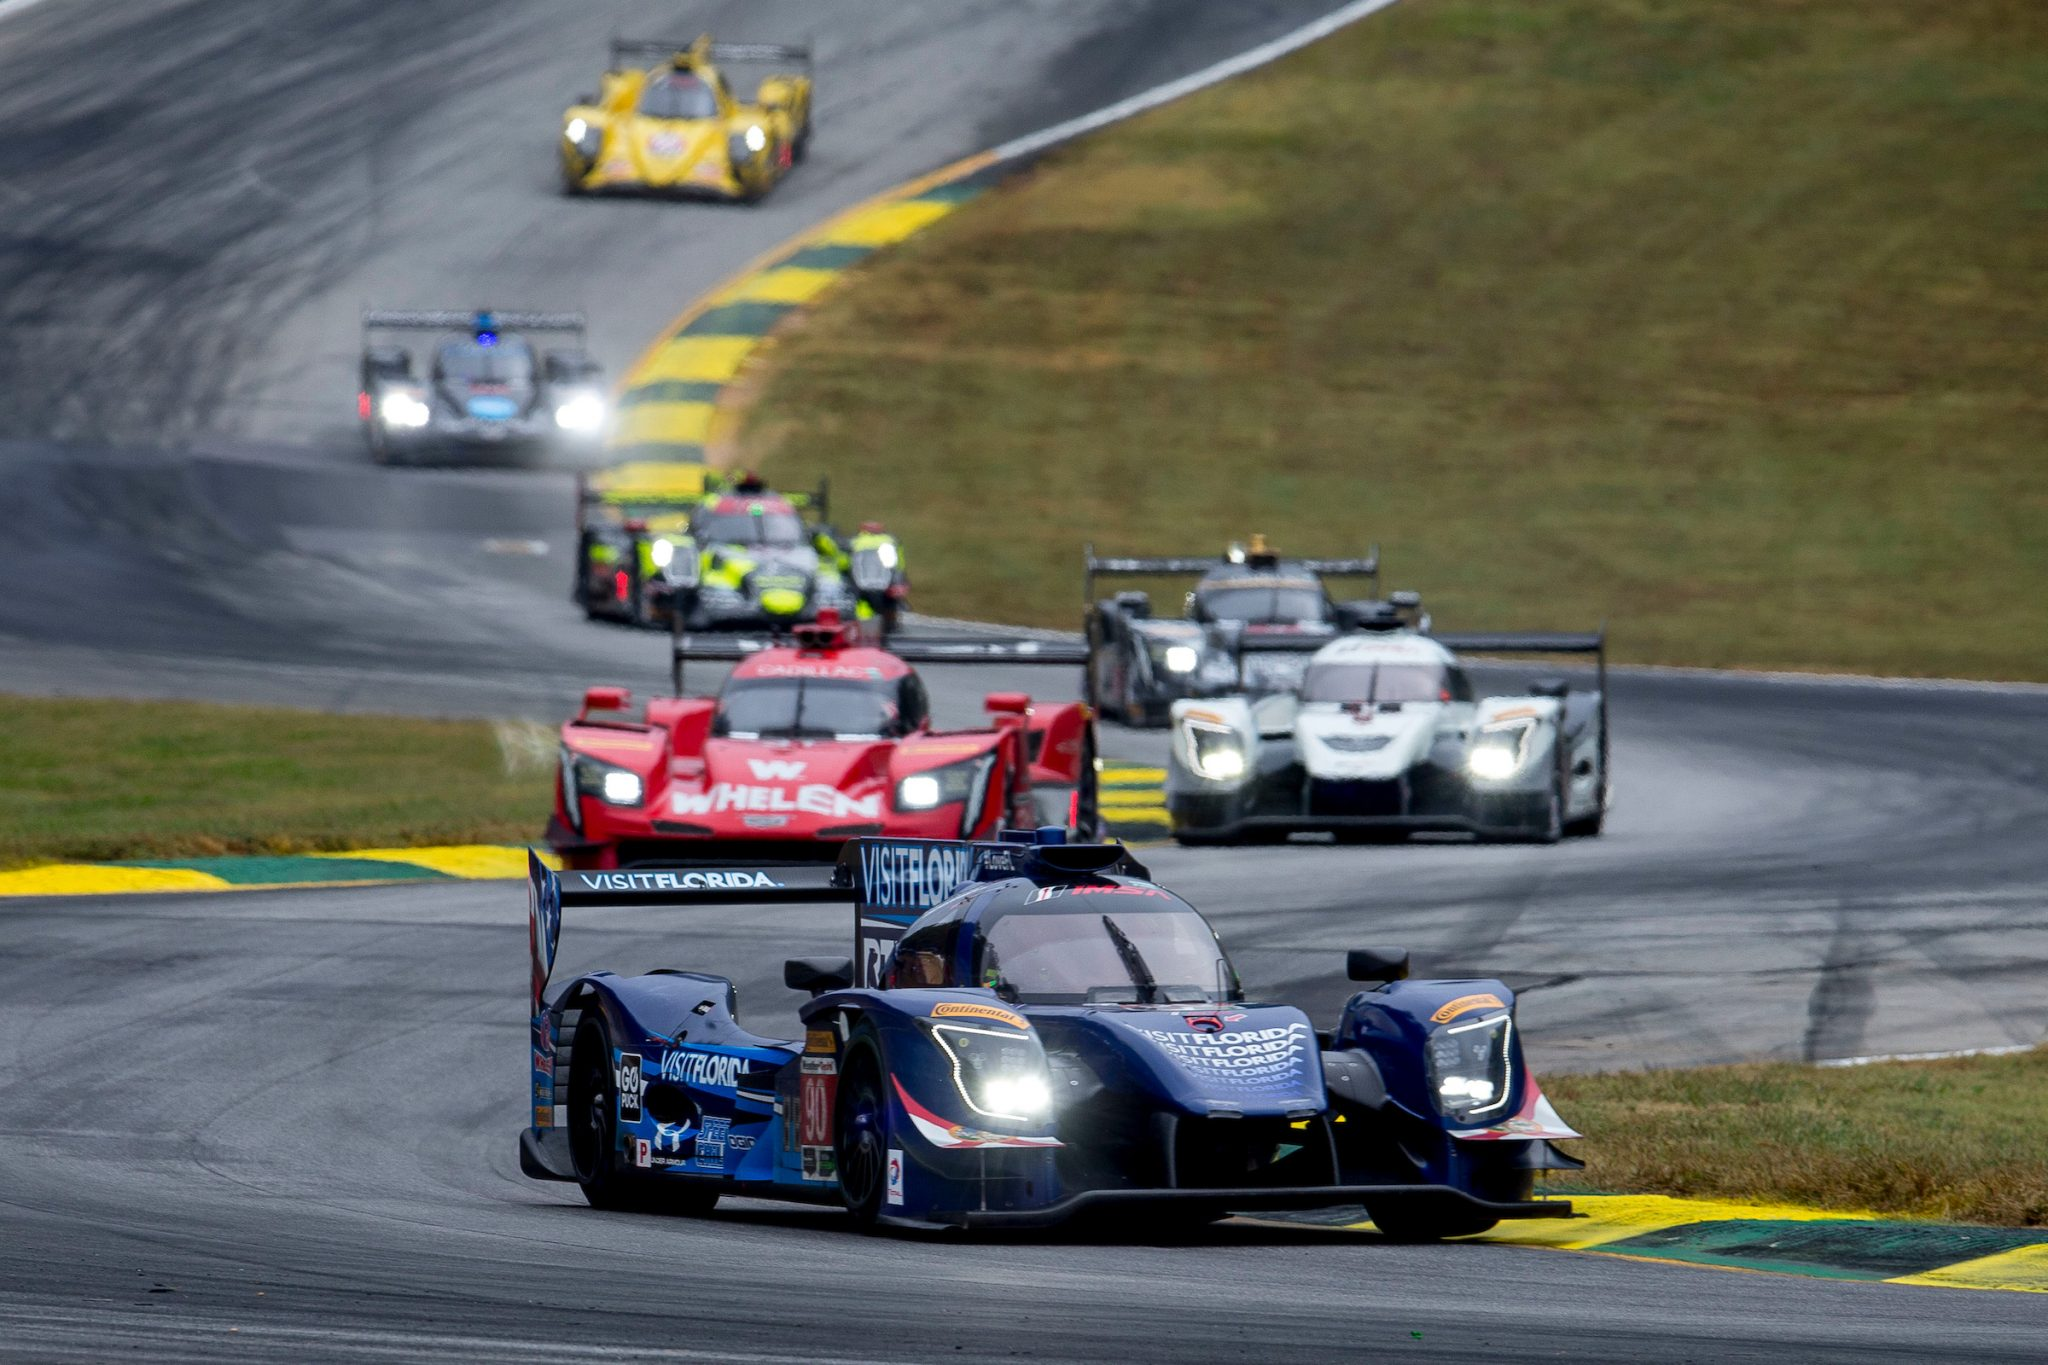 VISIT FLORIDA Racing Perseveres Through Petit Le Mans